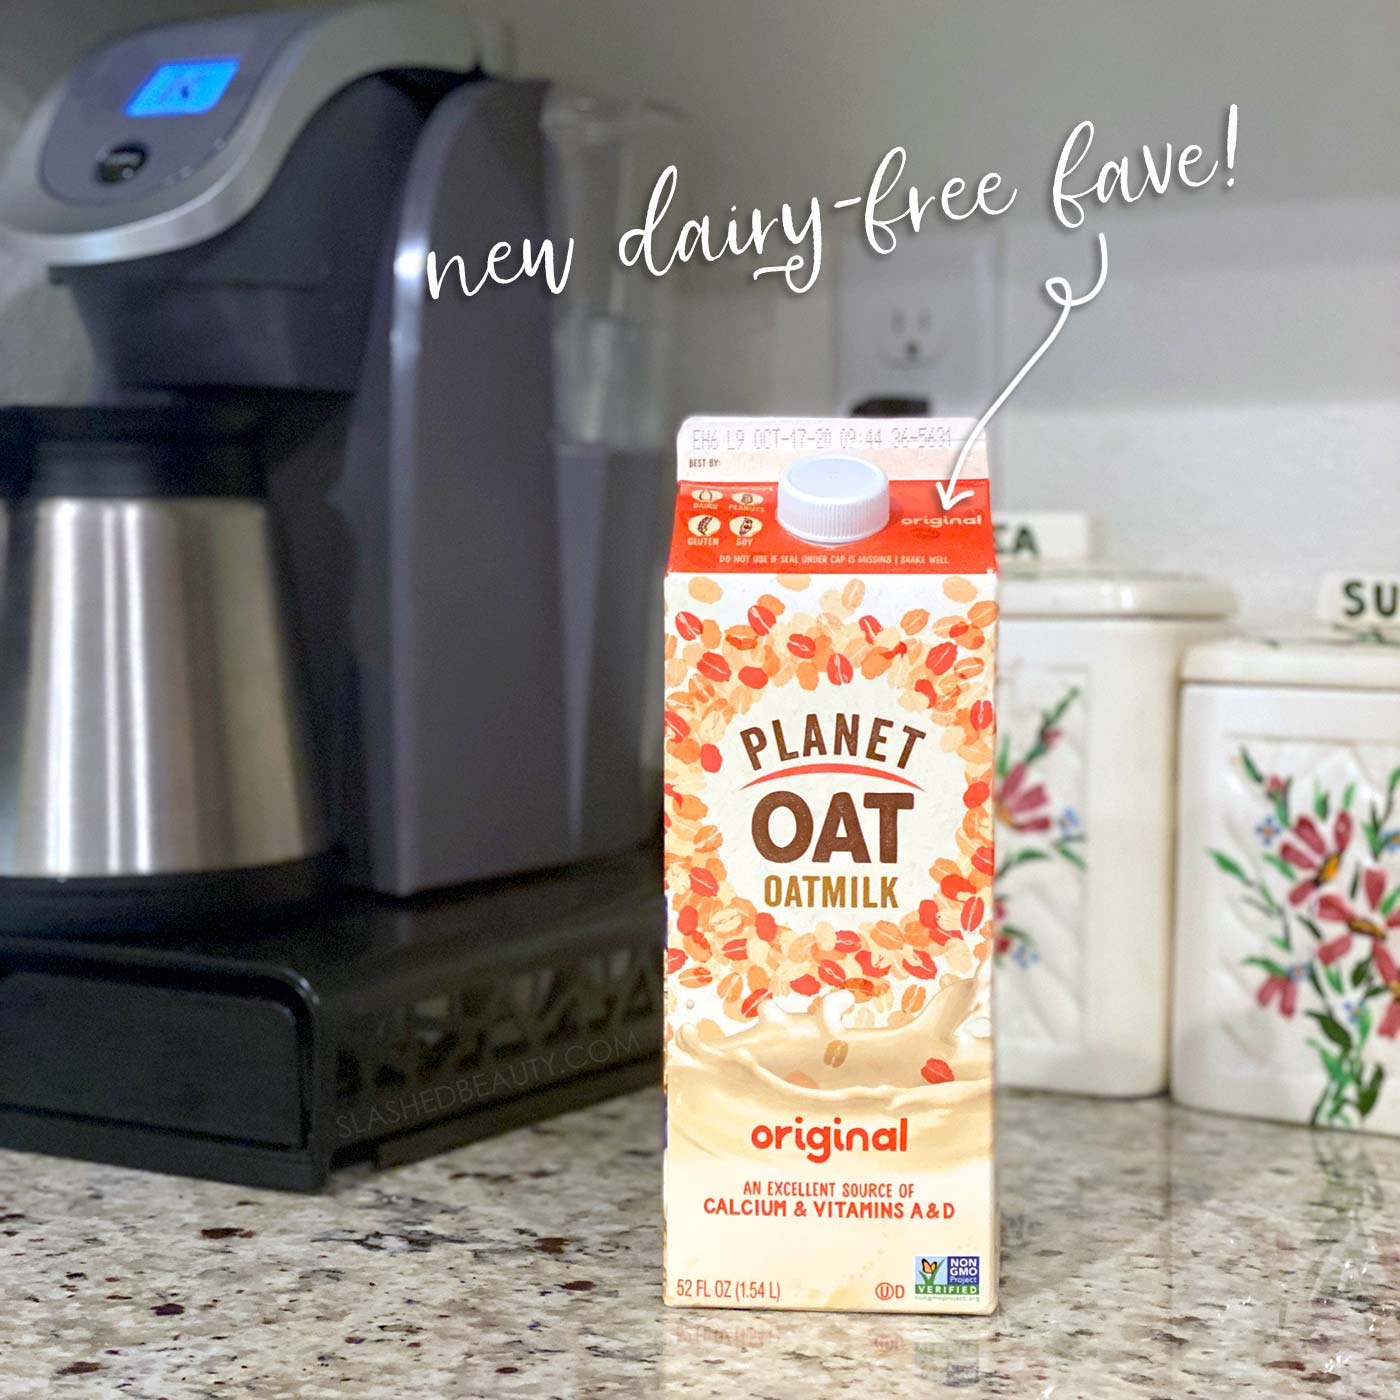 Planet Oat Milk Dairy-Free Swap | Going Dairy Free for Acne: My 30 Day Results | Does Going Dairy Free Help with Acne? | Slashed Beauty